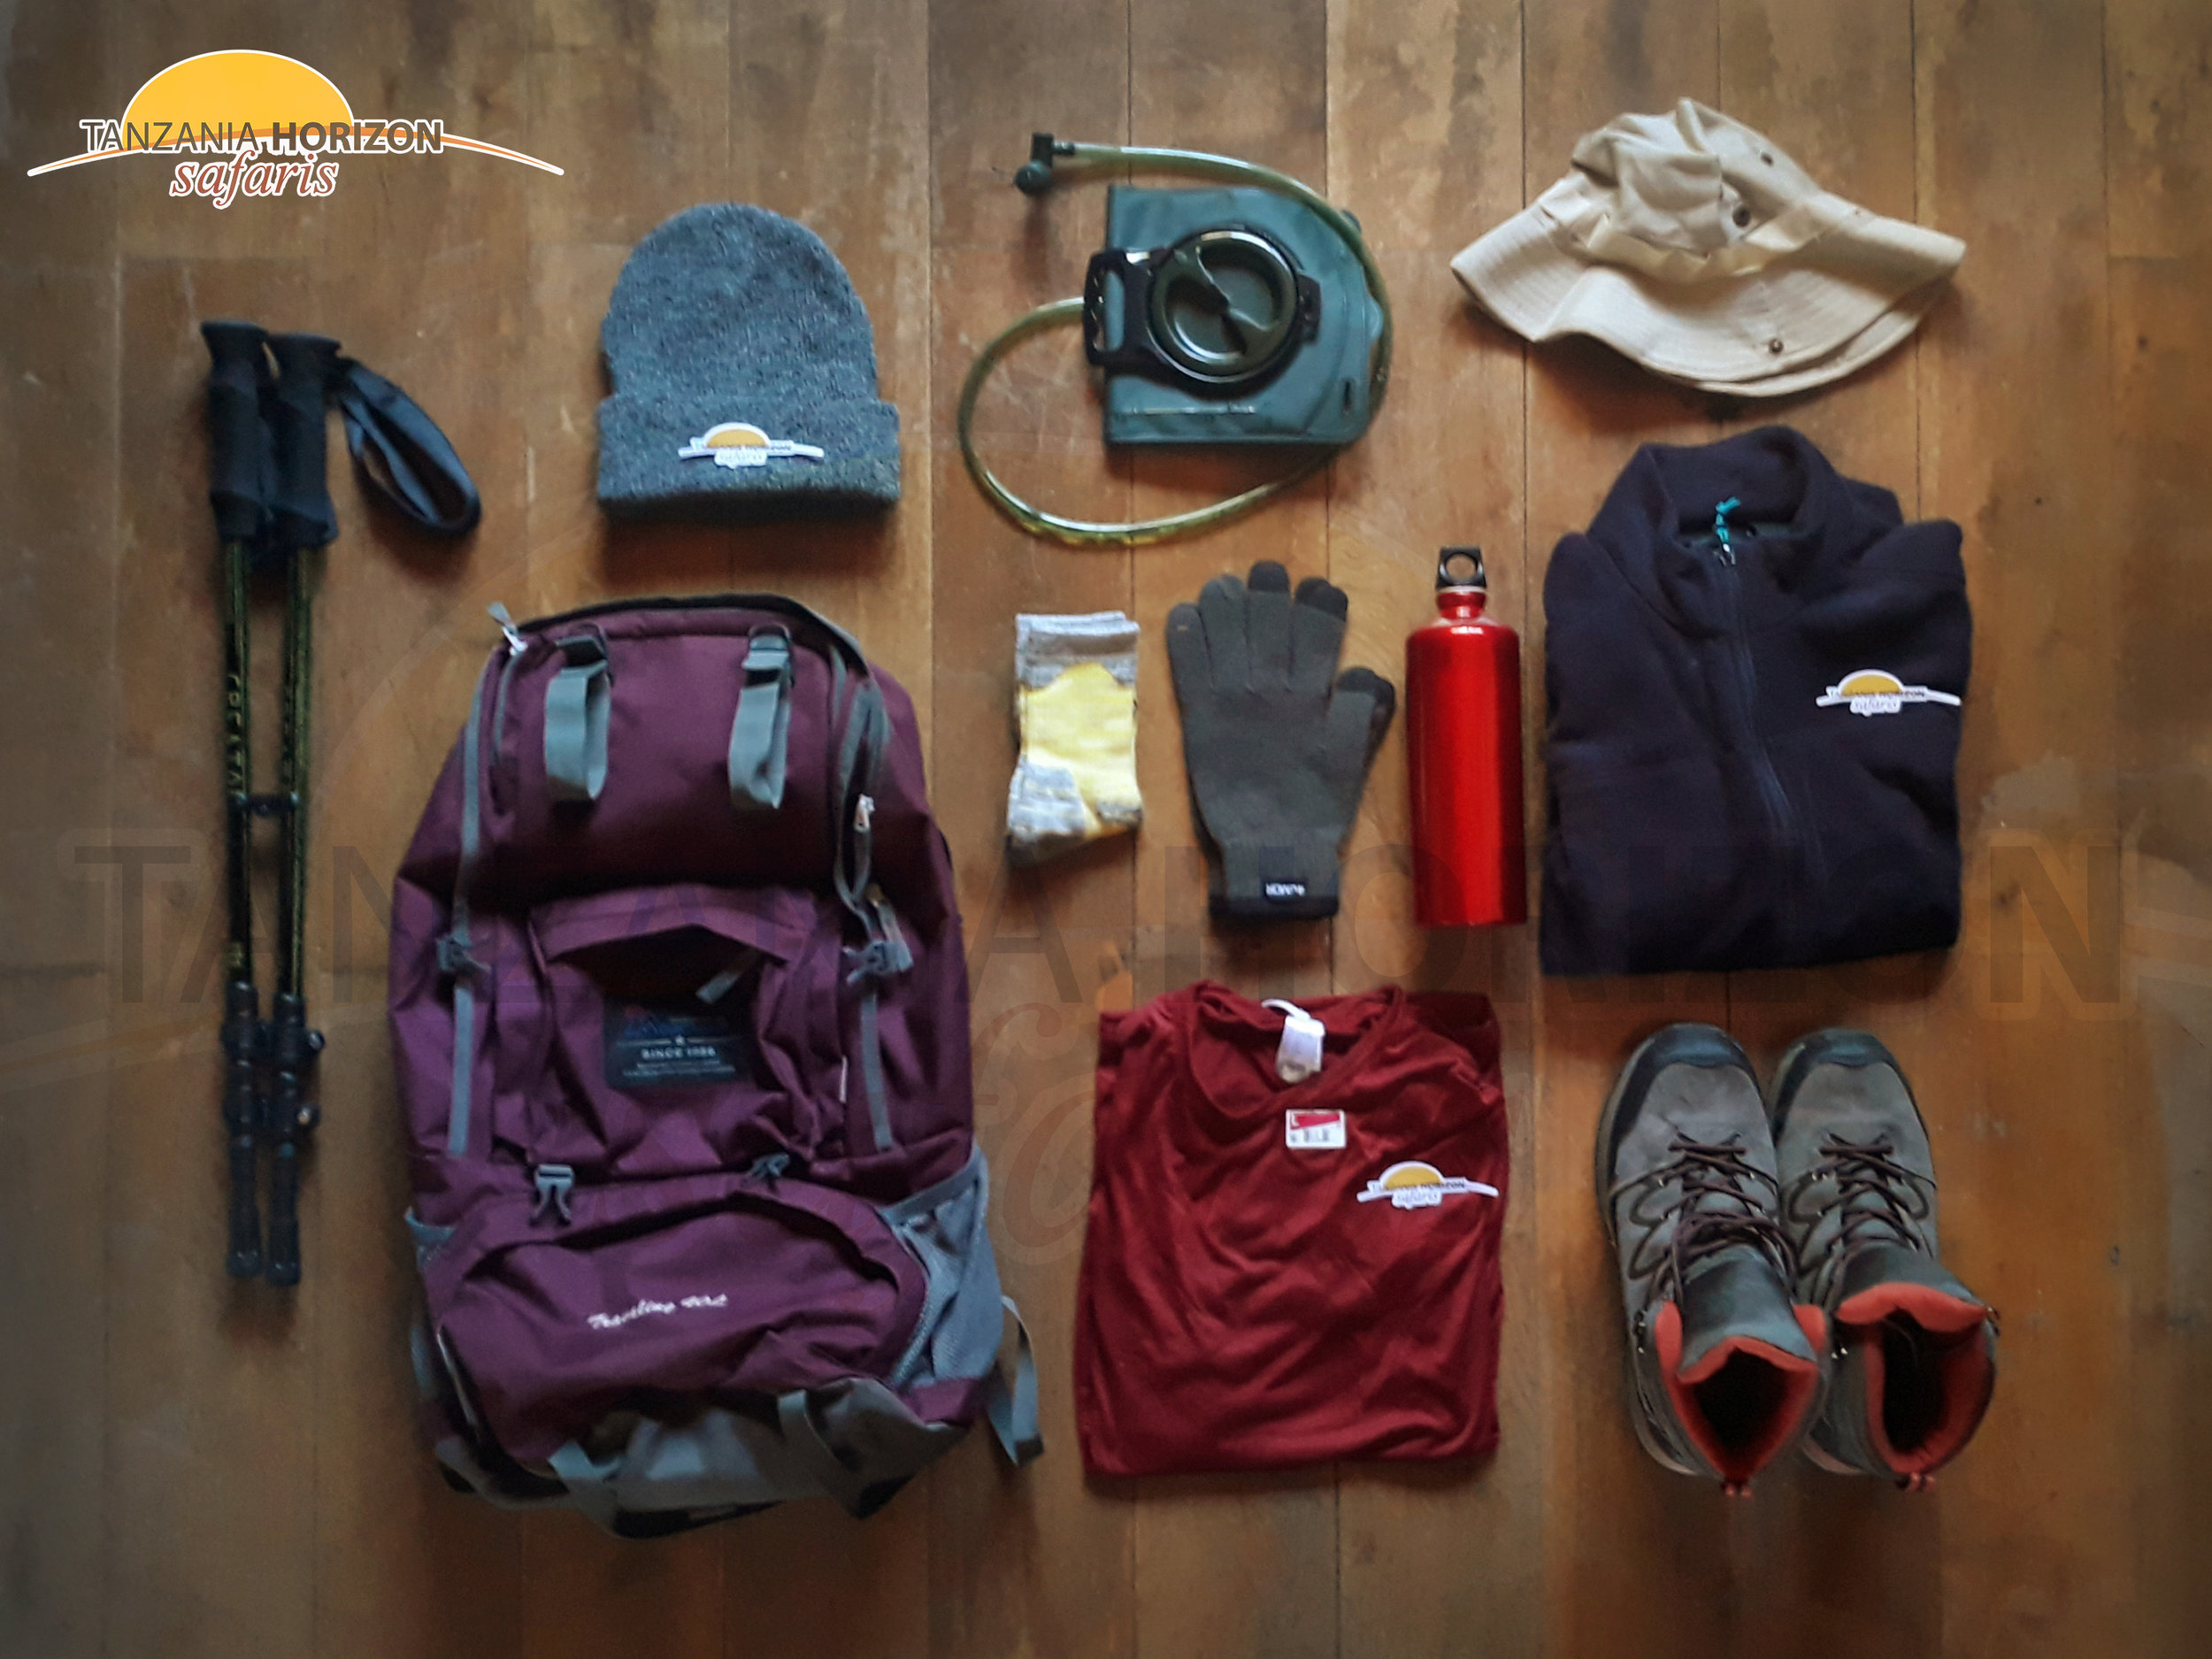 A DAYPACK FOR CLIMBING KILIMANJARO